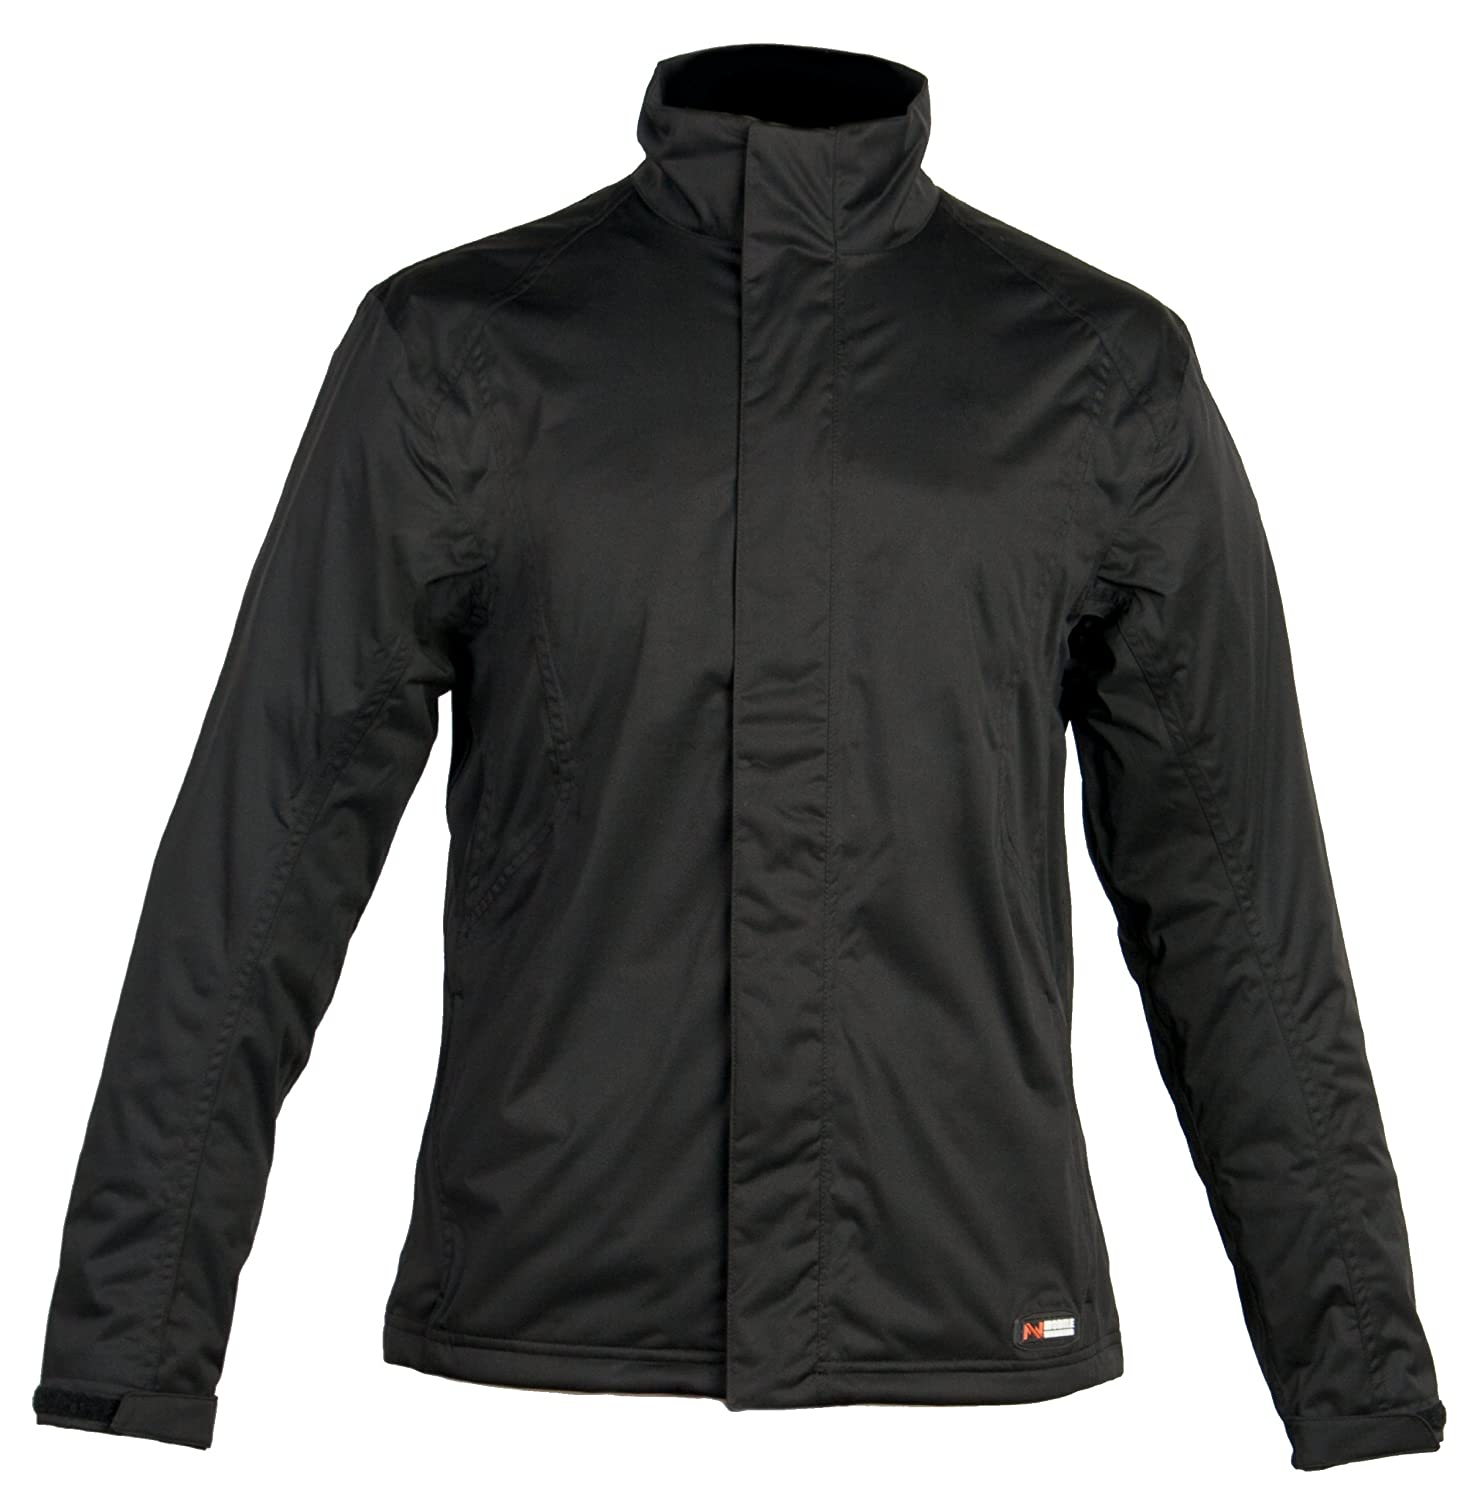 Image of Ansai Golf Men's Golf Rain Gear Jacket Jackets